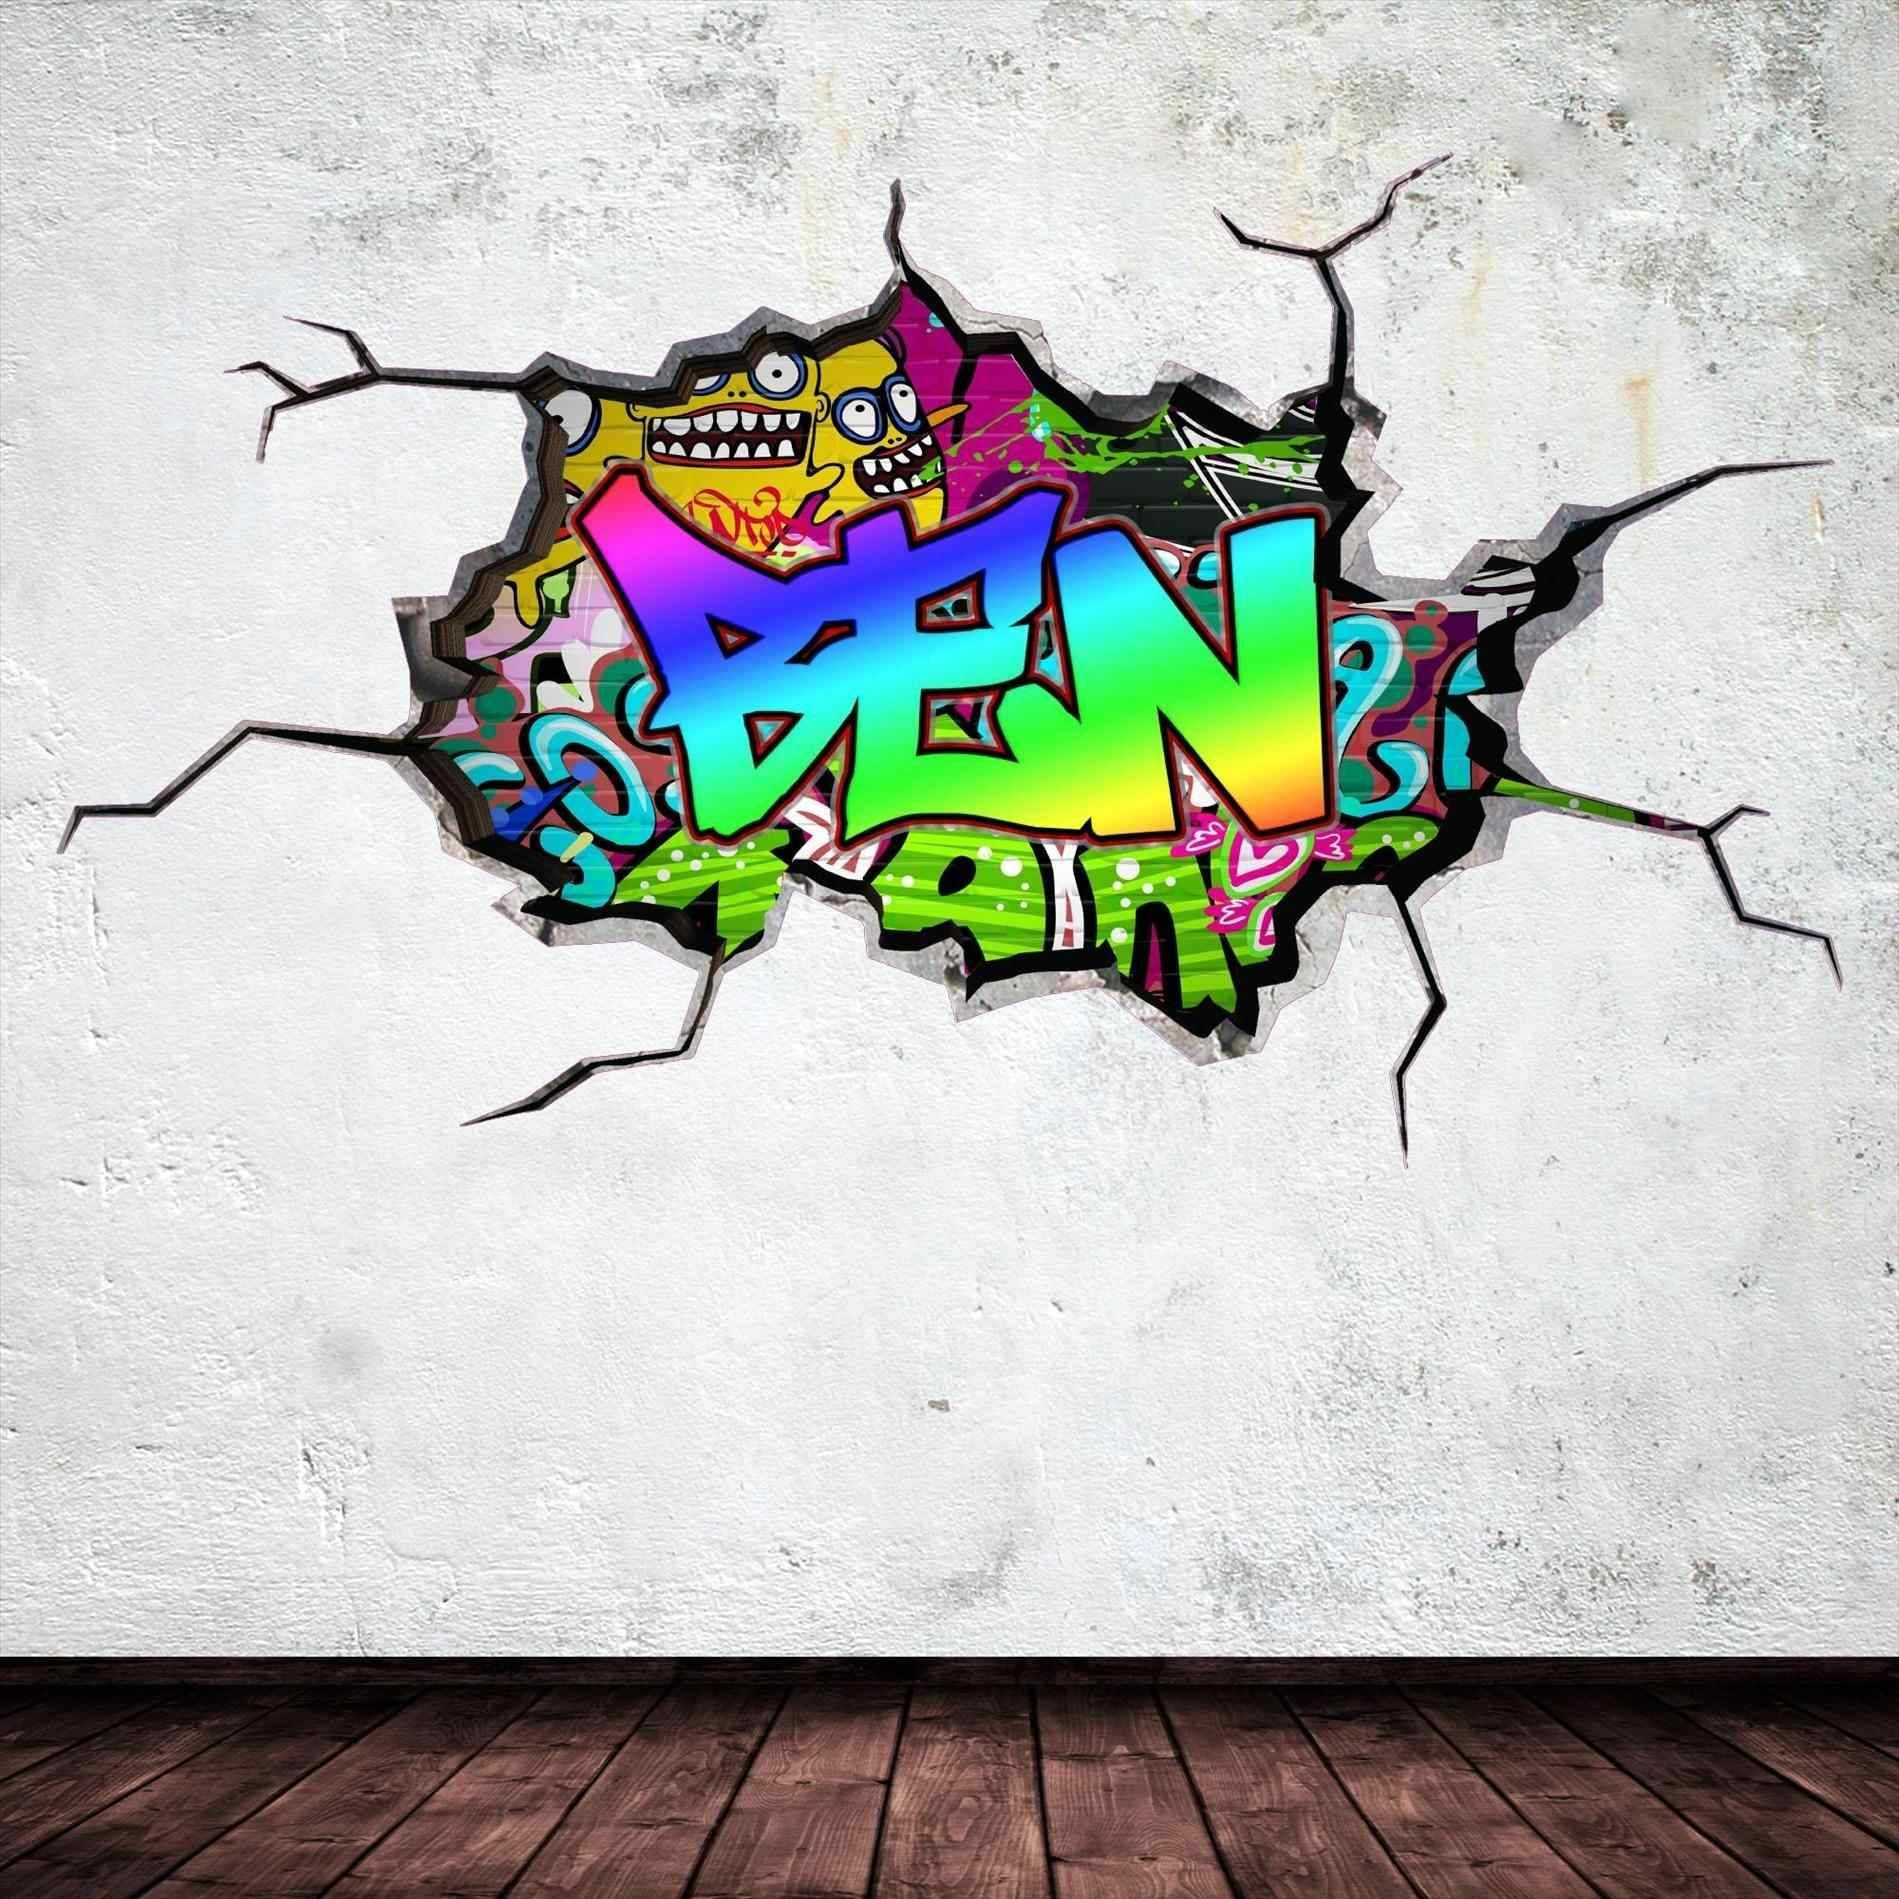 Personalized Graffiti Wall Decals | Home Interior Decor With Most Up To Date Personalized Graffiti Wall Art (View 7 of 30)